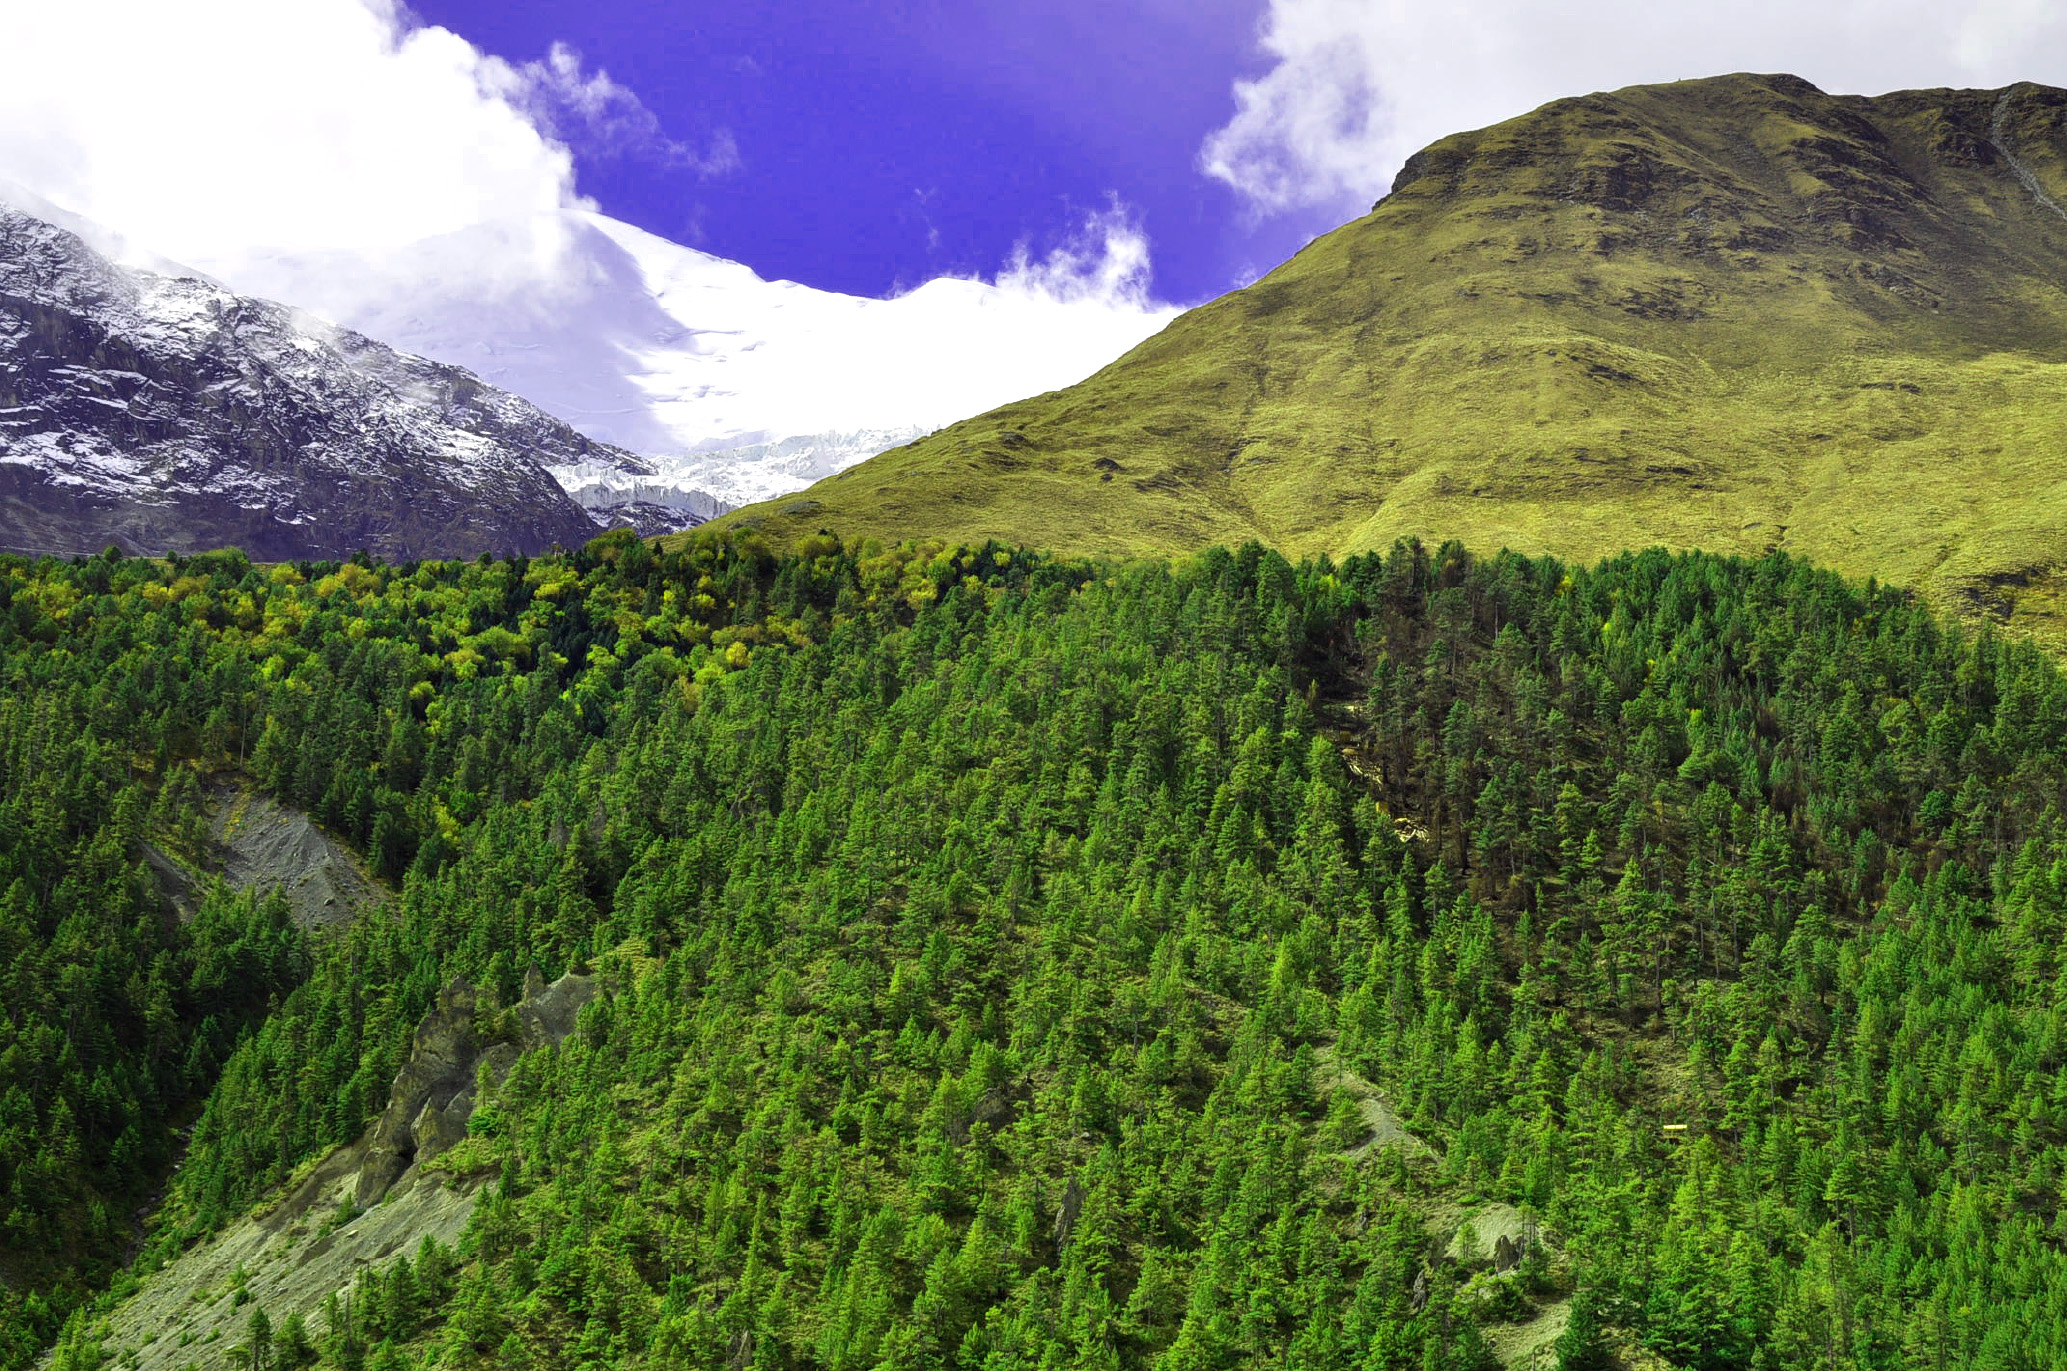 Anthropogenic treeline in Manang, Nepal, showing an abrupt transition to alpine grazing lands (Schickhoff, 24 September 2013).